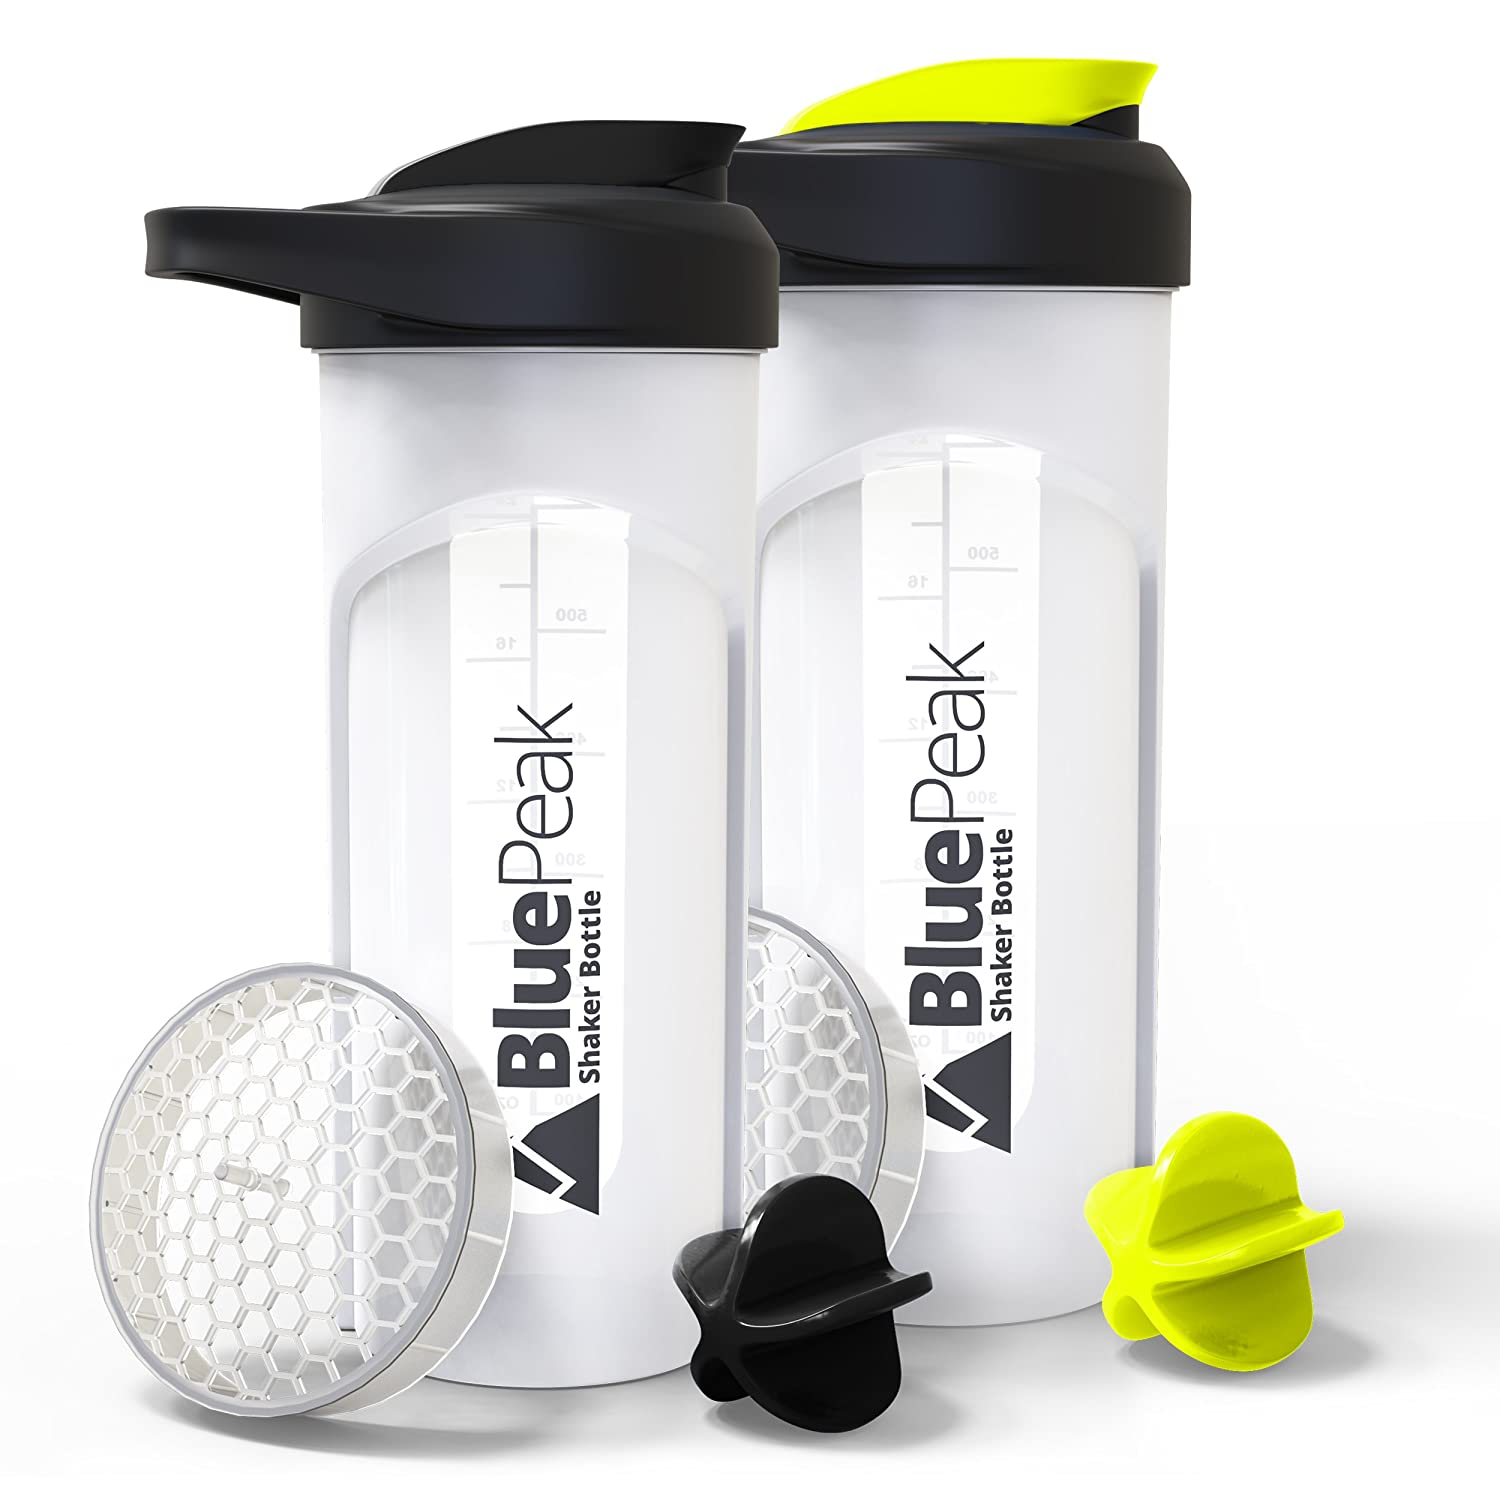 BluePeak Protein Shaker Bottle 28-Ounce, 2-Pack, with Dual Mixing Technology. BPA Free, Shaker Balls & Mixing Grids Included (Yellow-Black)